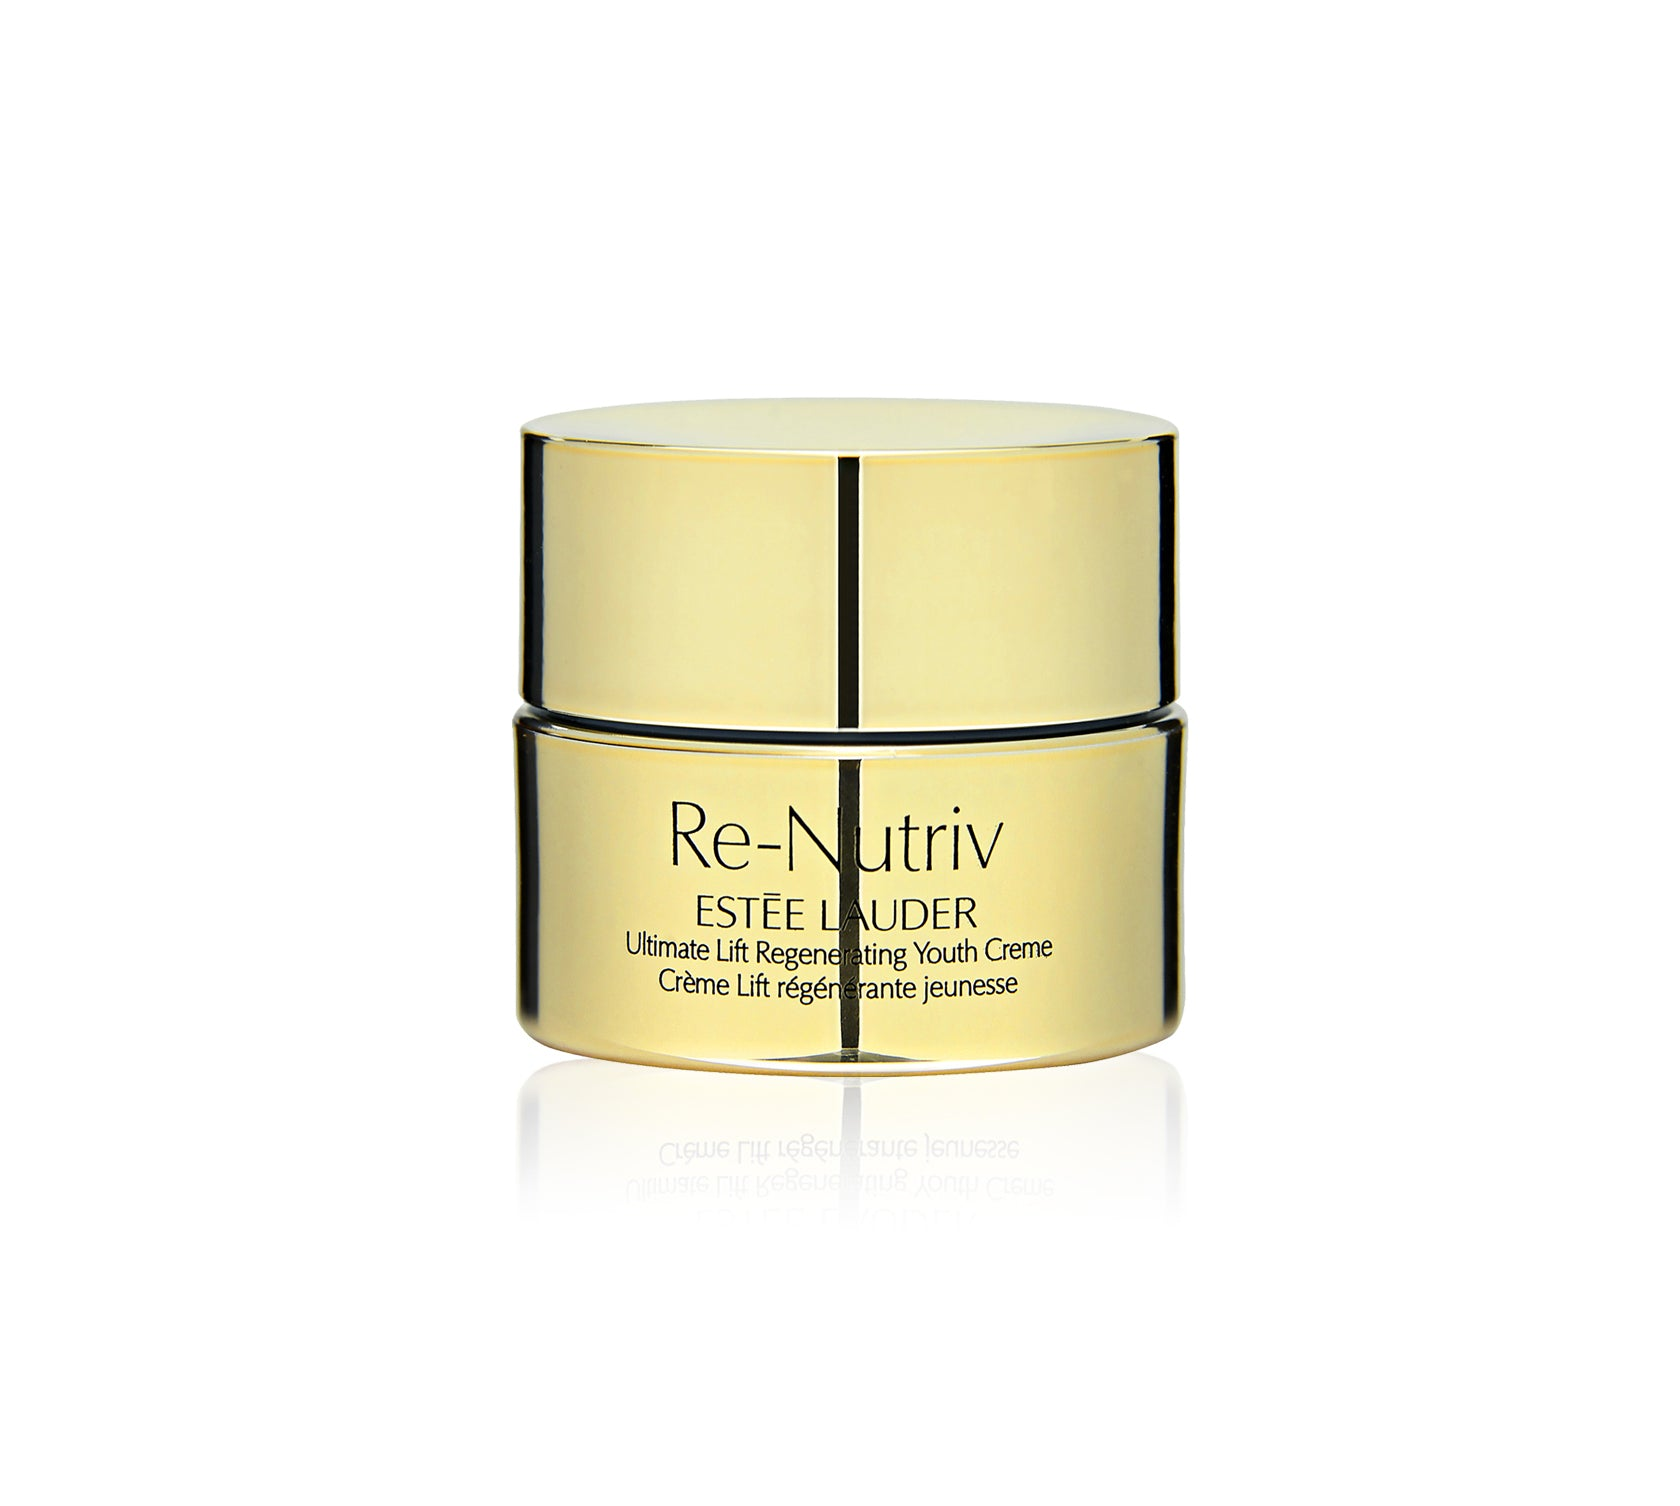 [Mini] Re-Nutriv Ultimate Lift Regenerating Youth Creme